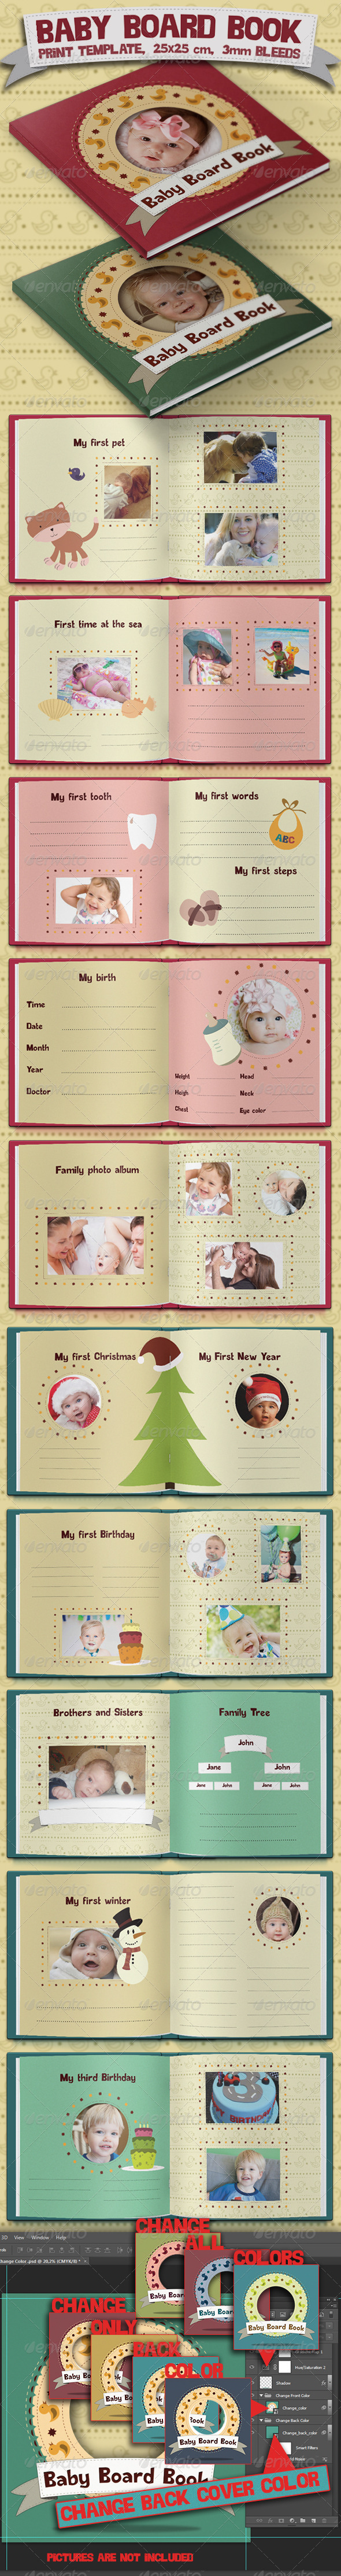 GraphicRiver Baby Board Book 4441181